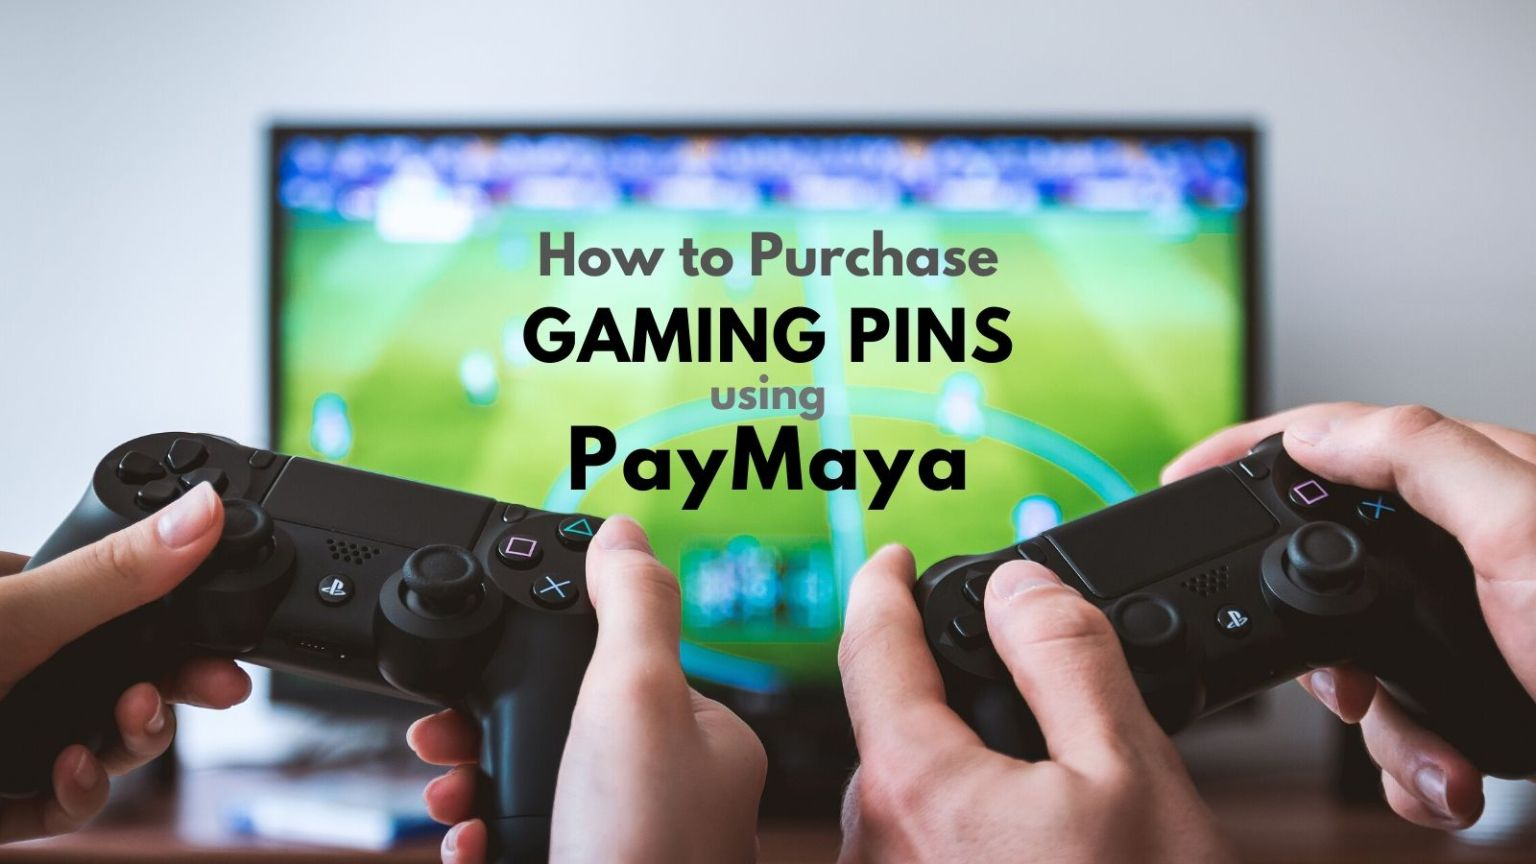 how to purchase gaming pins using paymaya